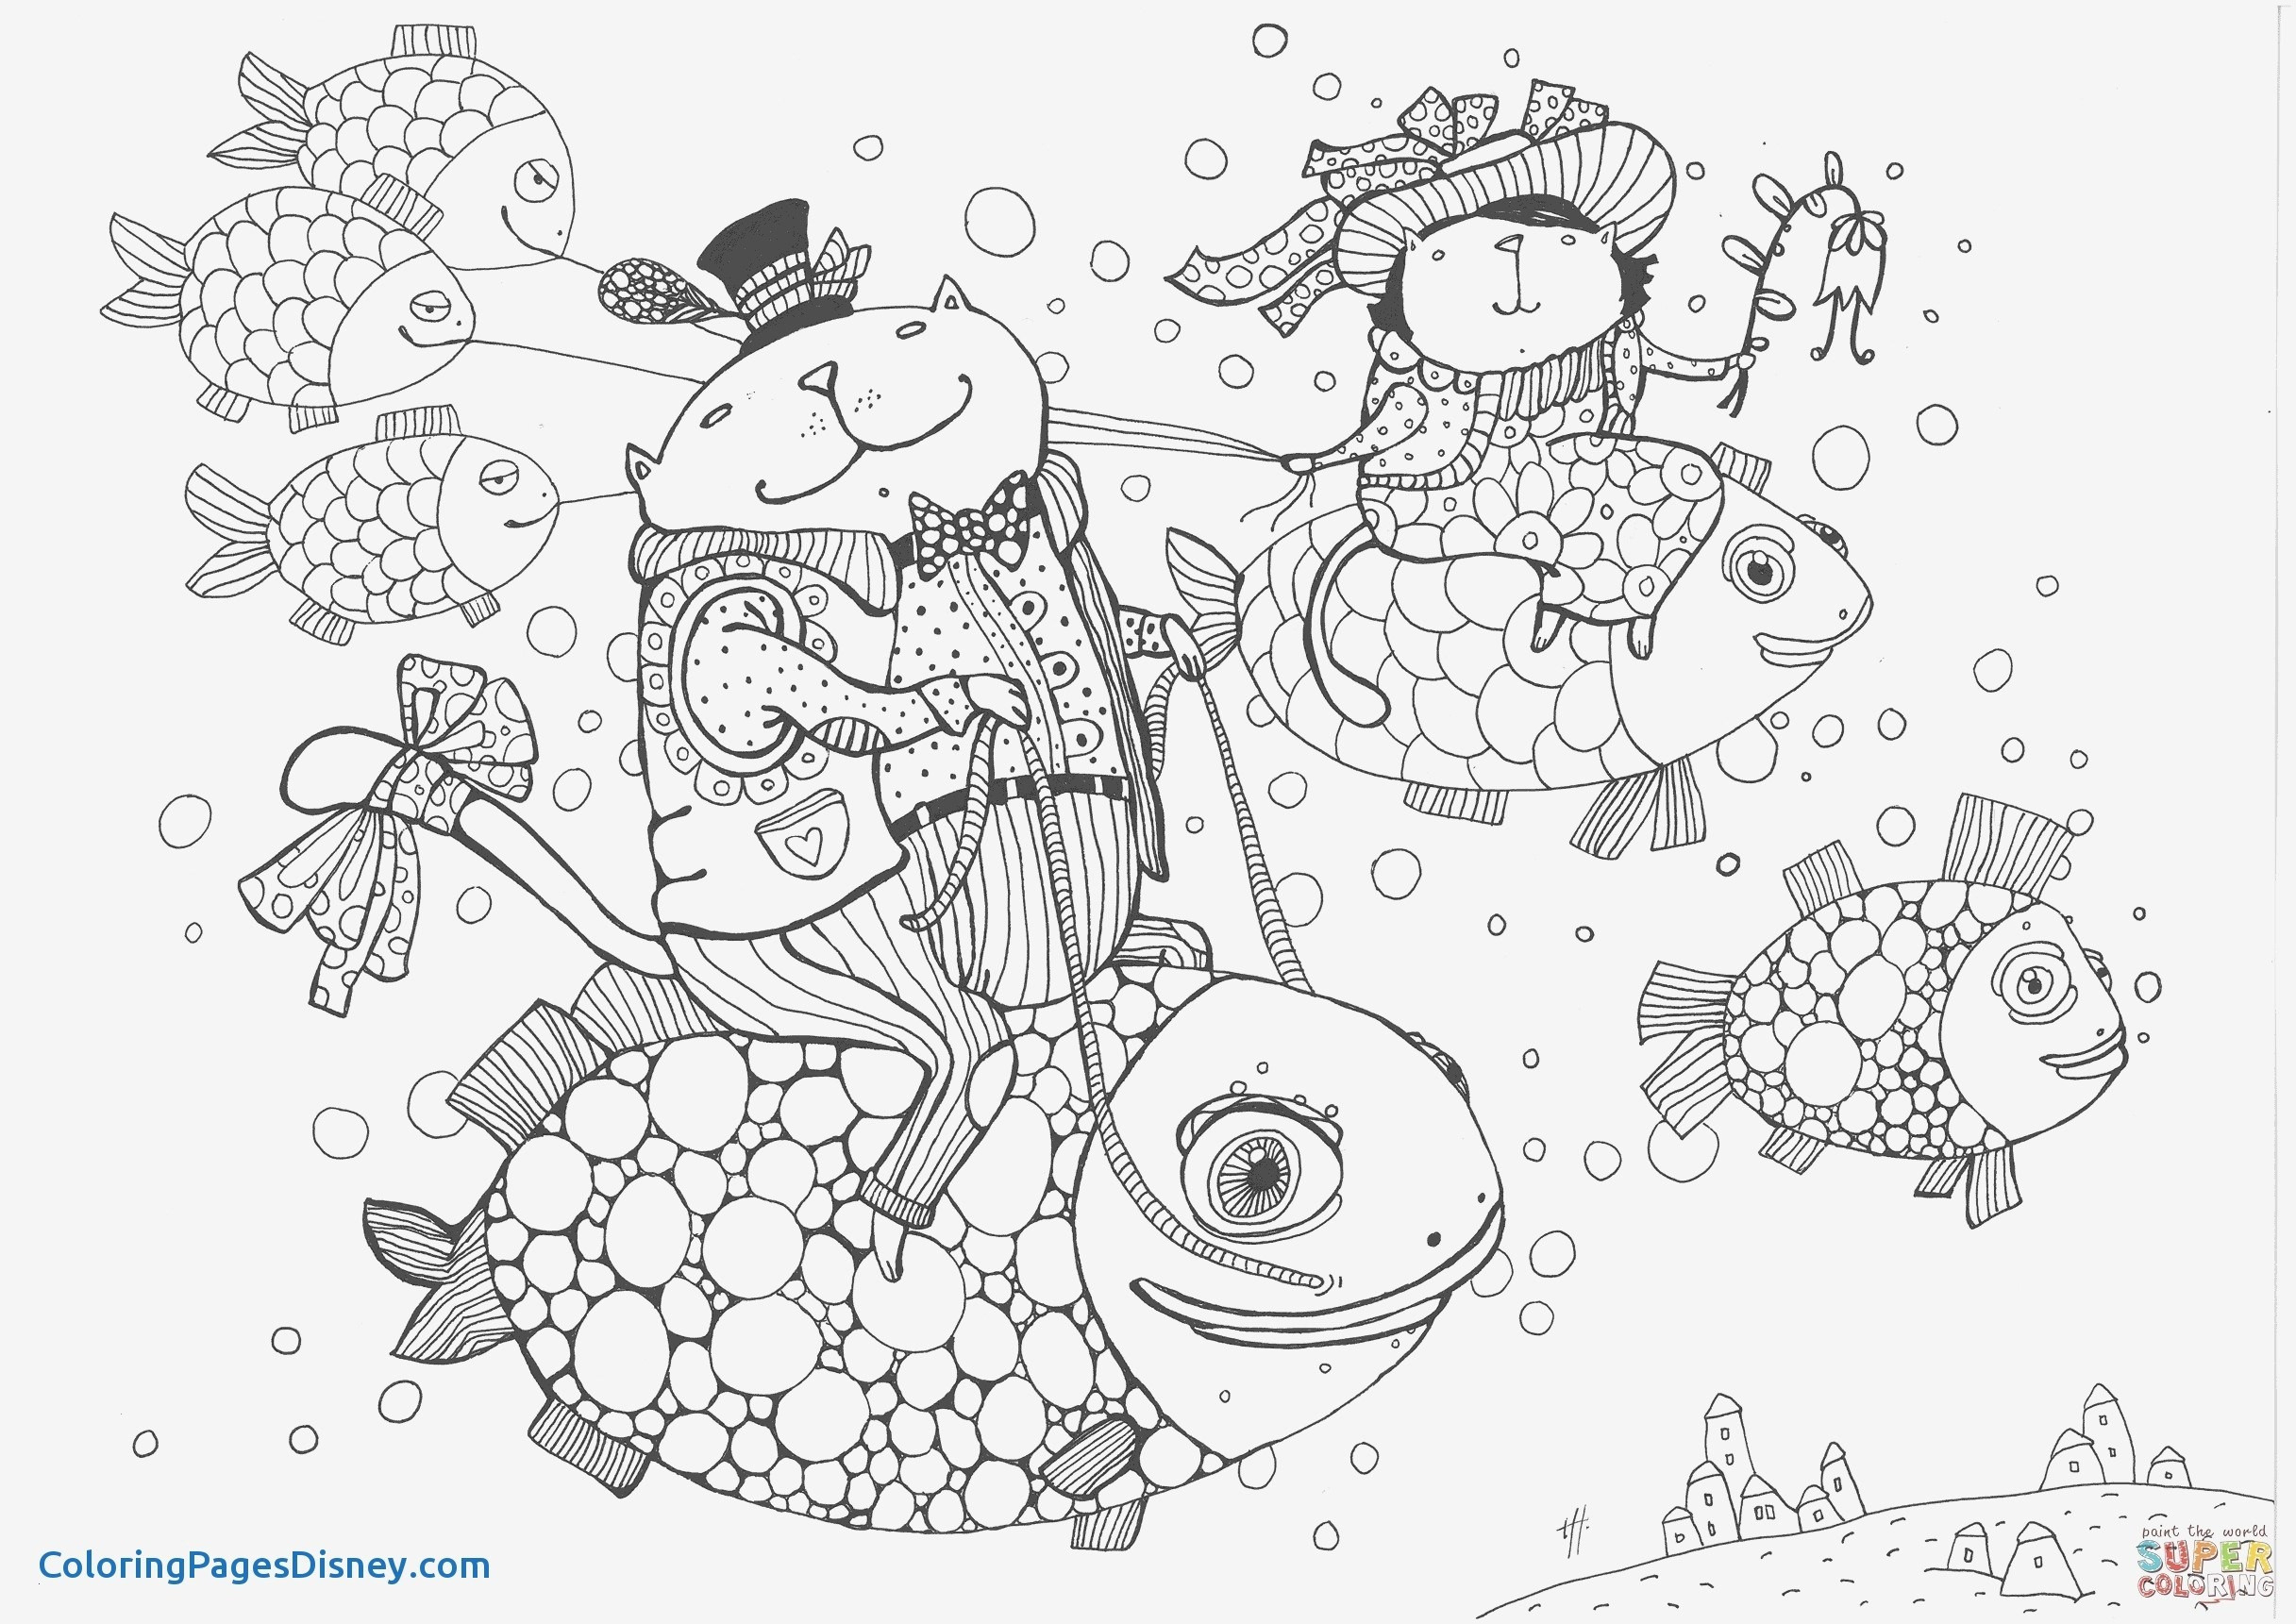 20 Coloring Pages Websites Free Download - Coloring Sheets